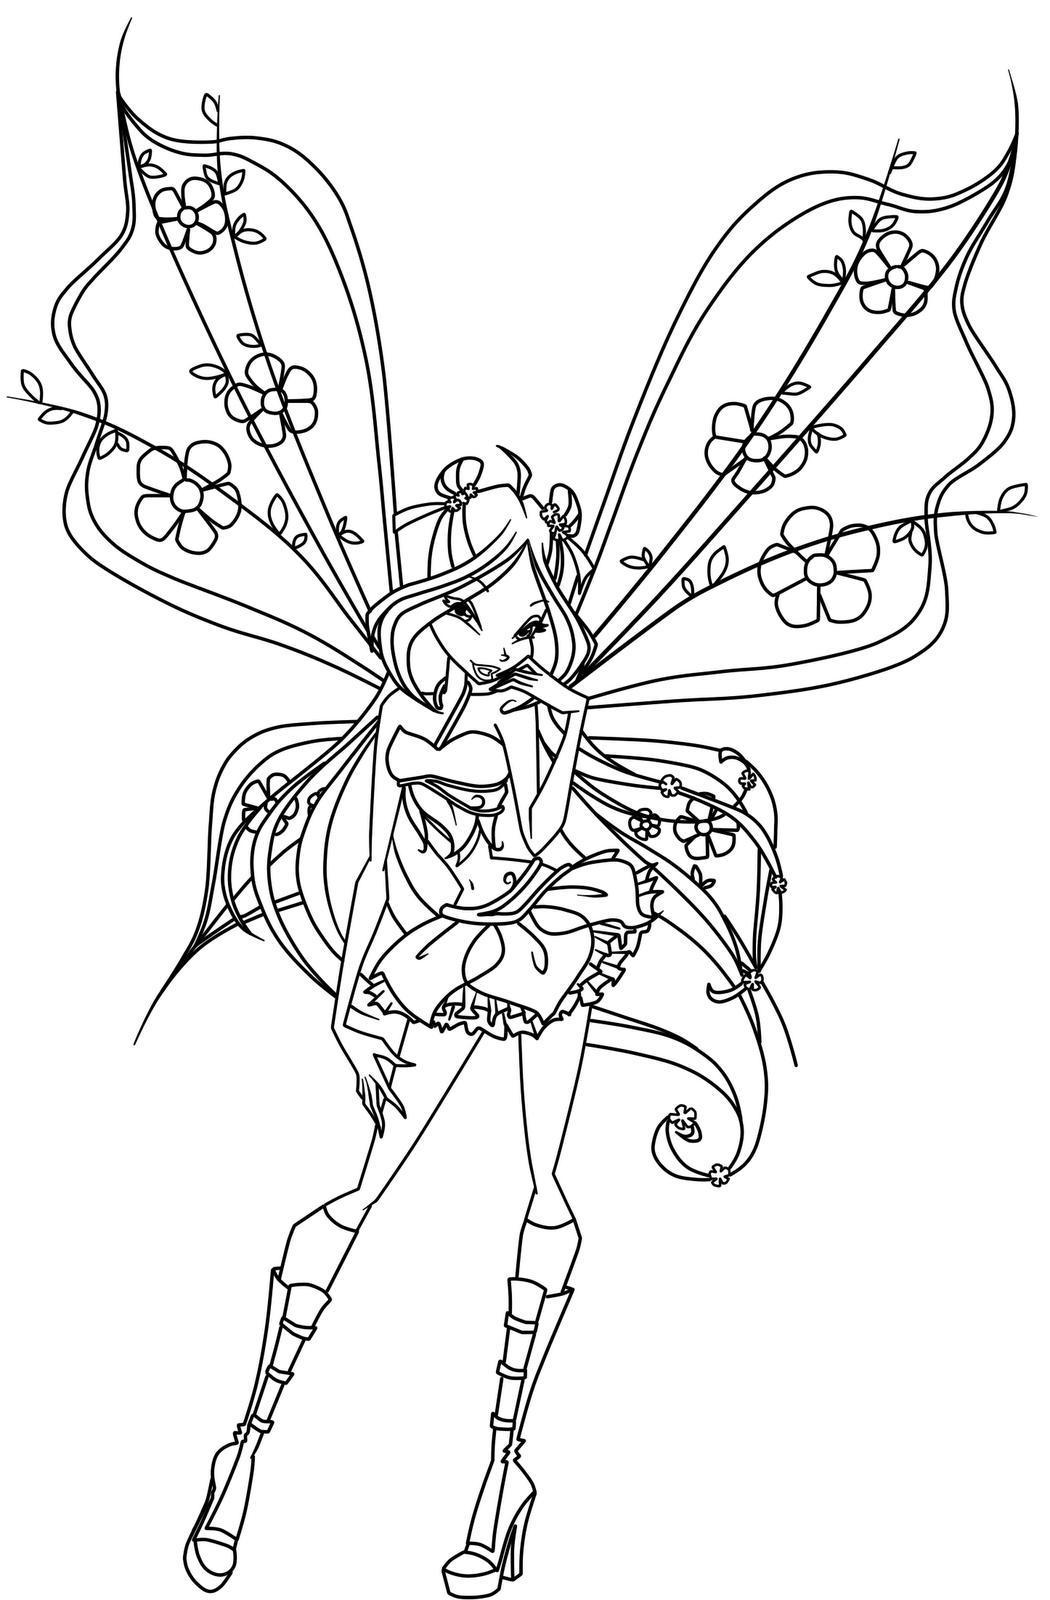 Winx club coloring pages only coloring pages for Winx coloring pages printable